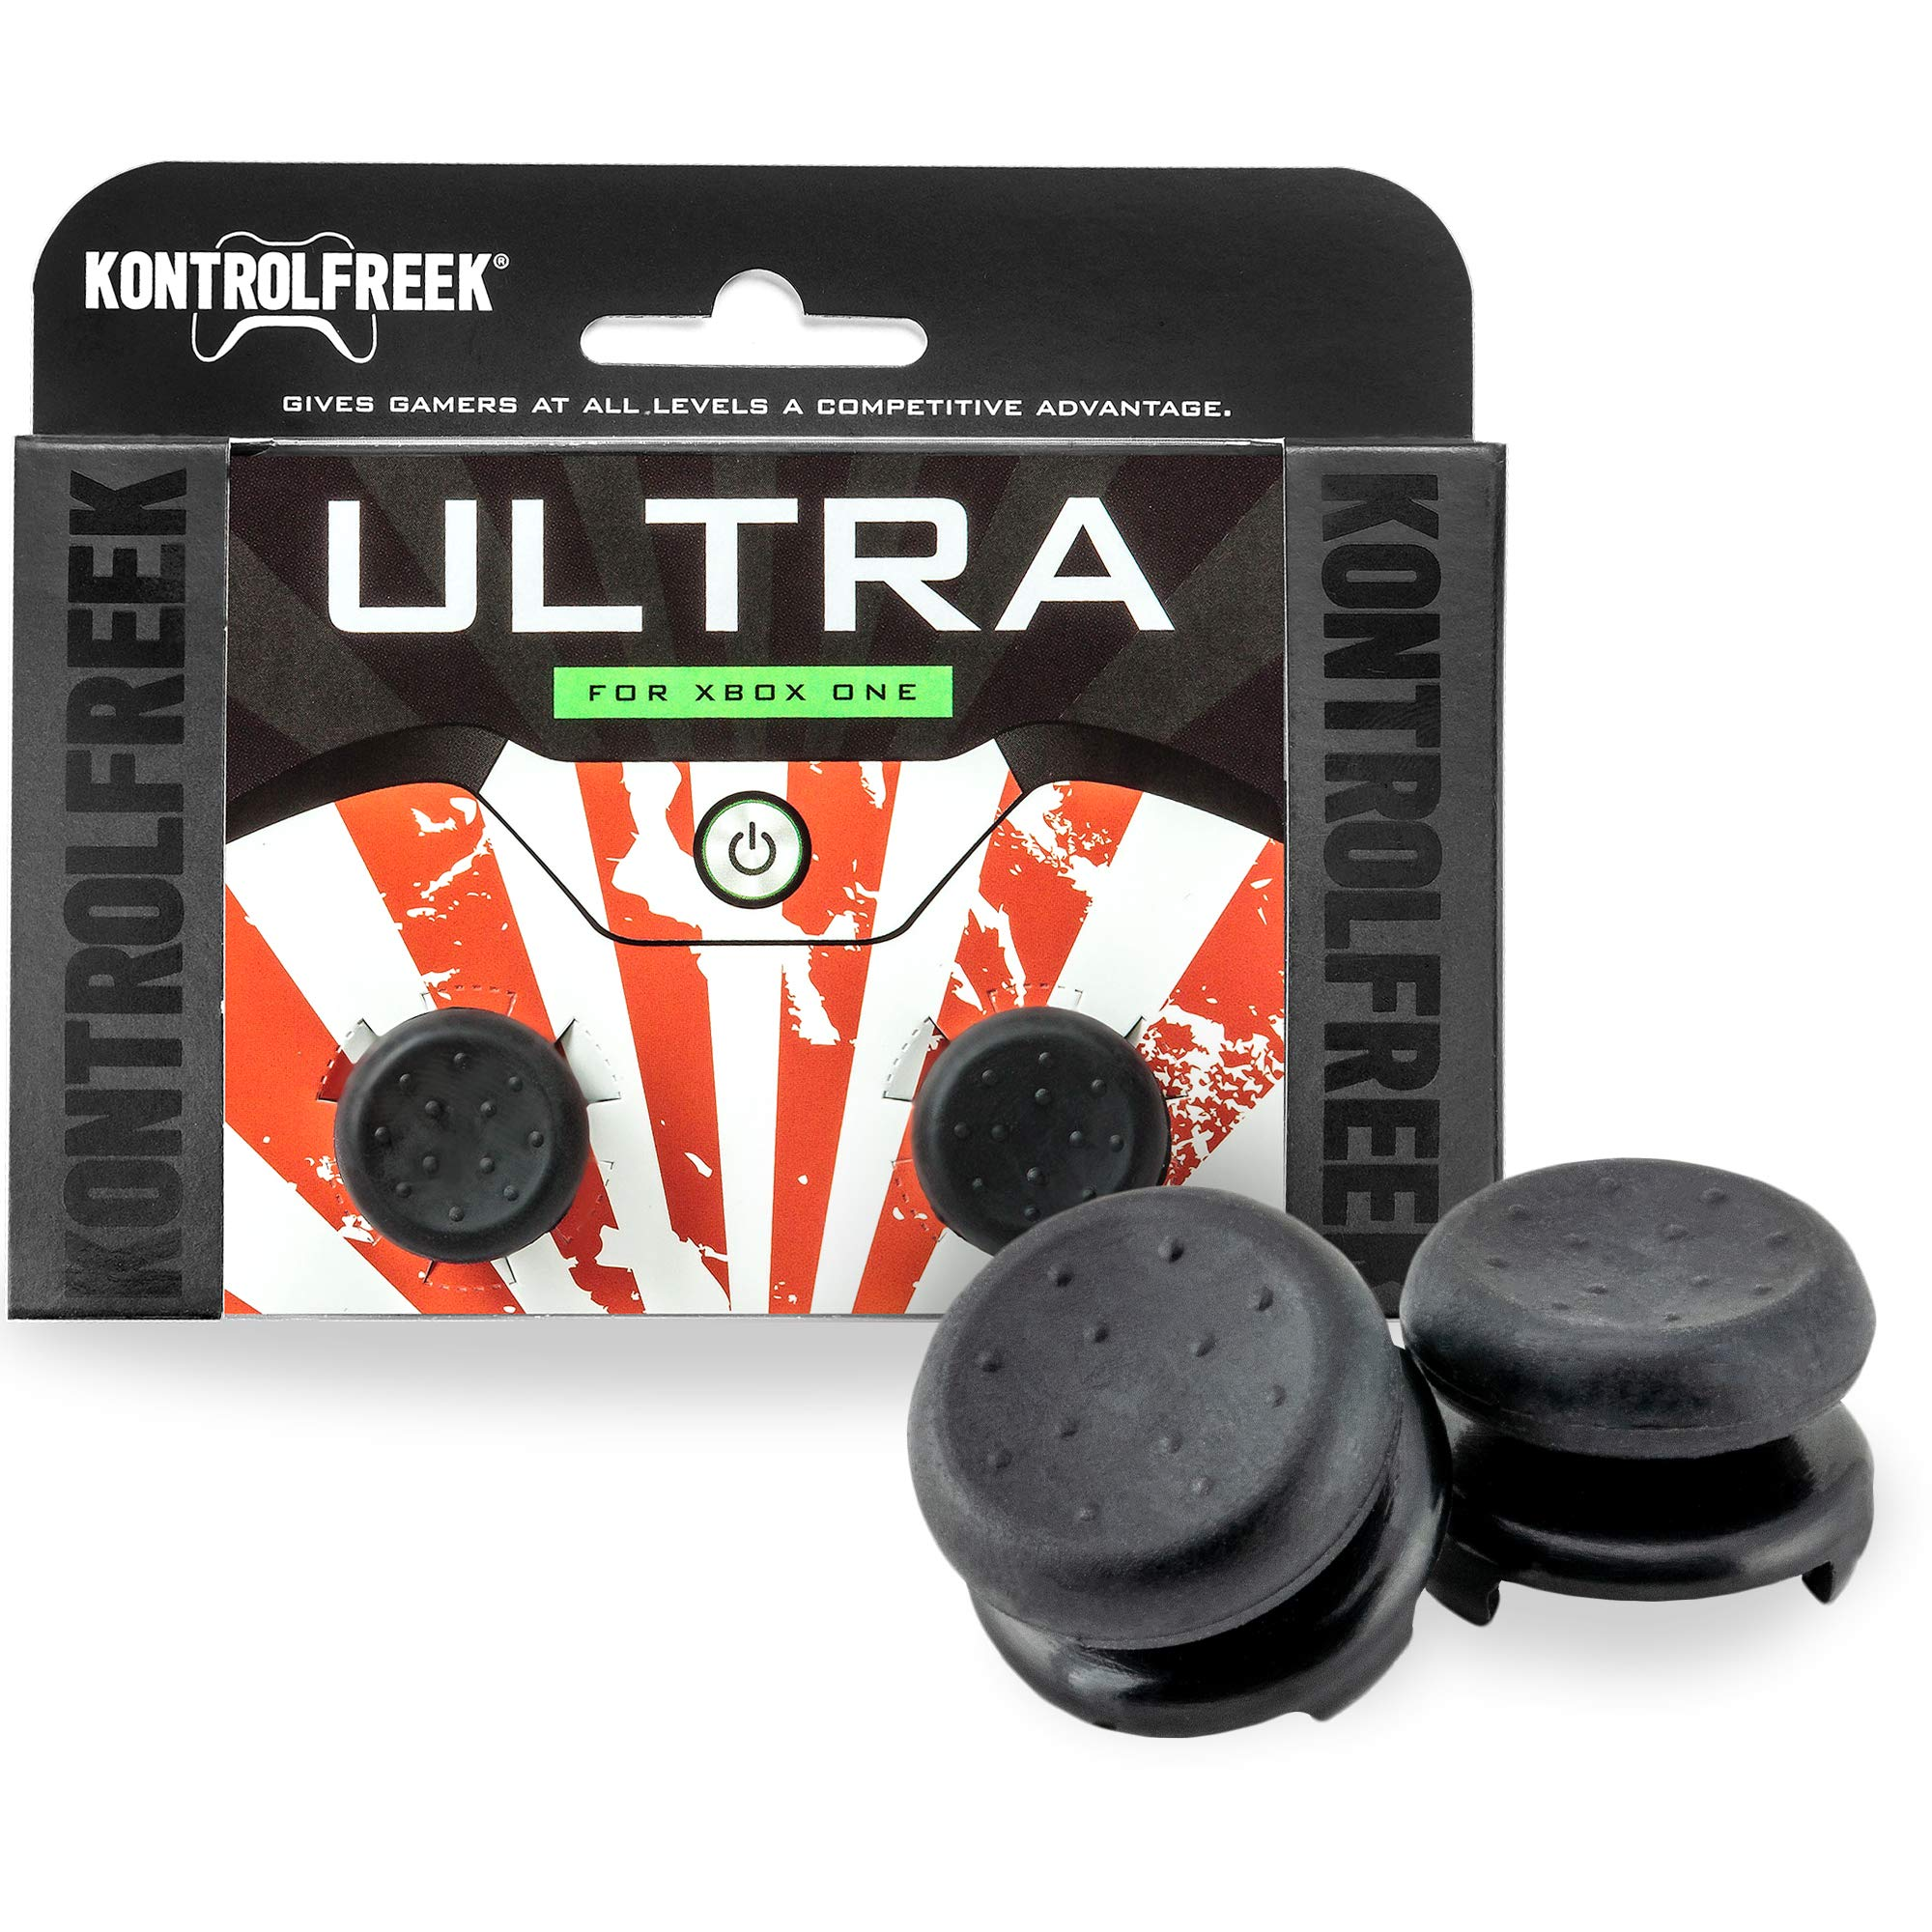 KontrolFreek Ultra for Xbox One Controller | 2 Performance Thumbsticks | 2 High-Rise Concave | Black by KontrolFreek